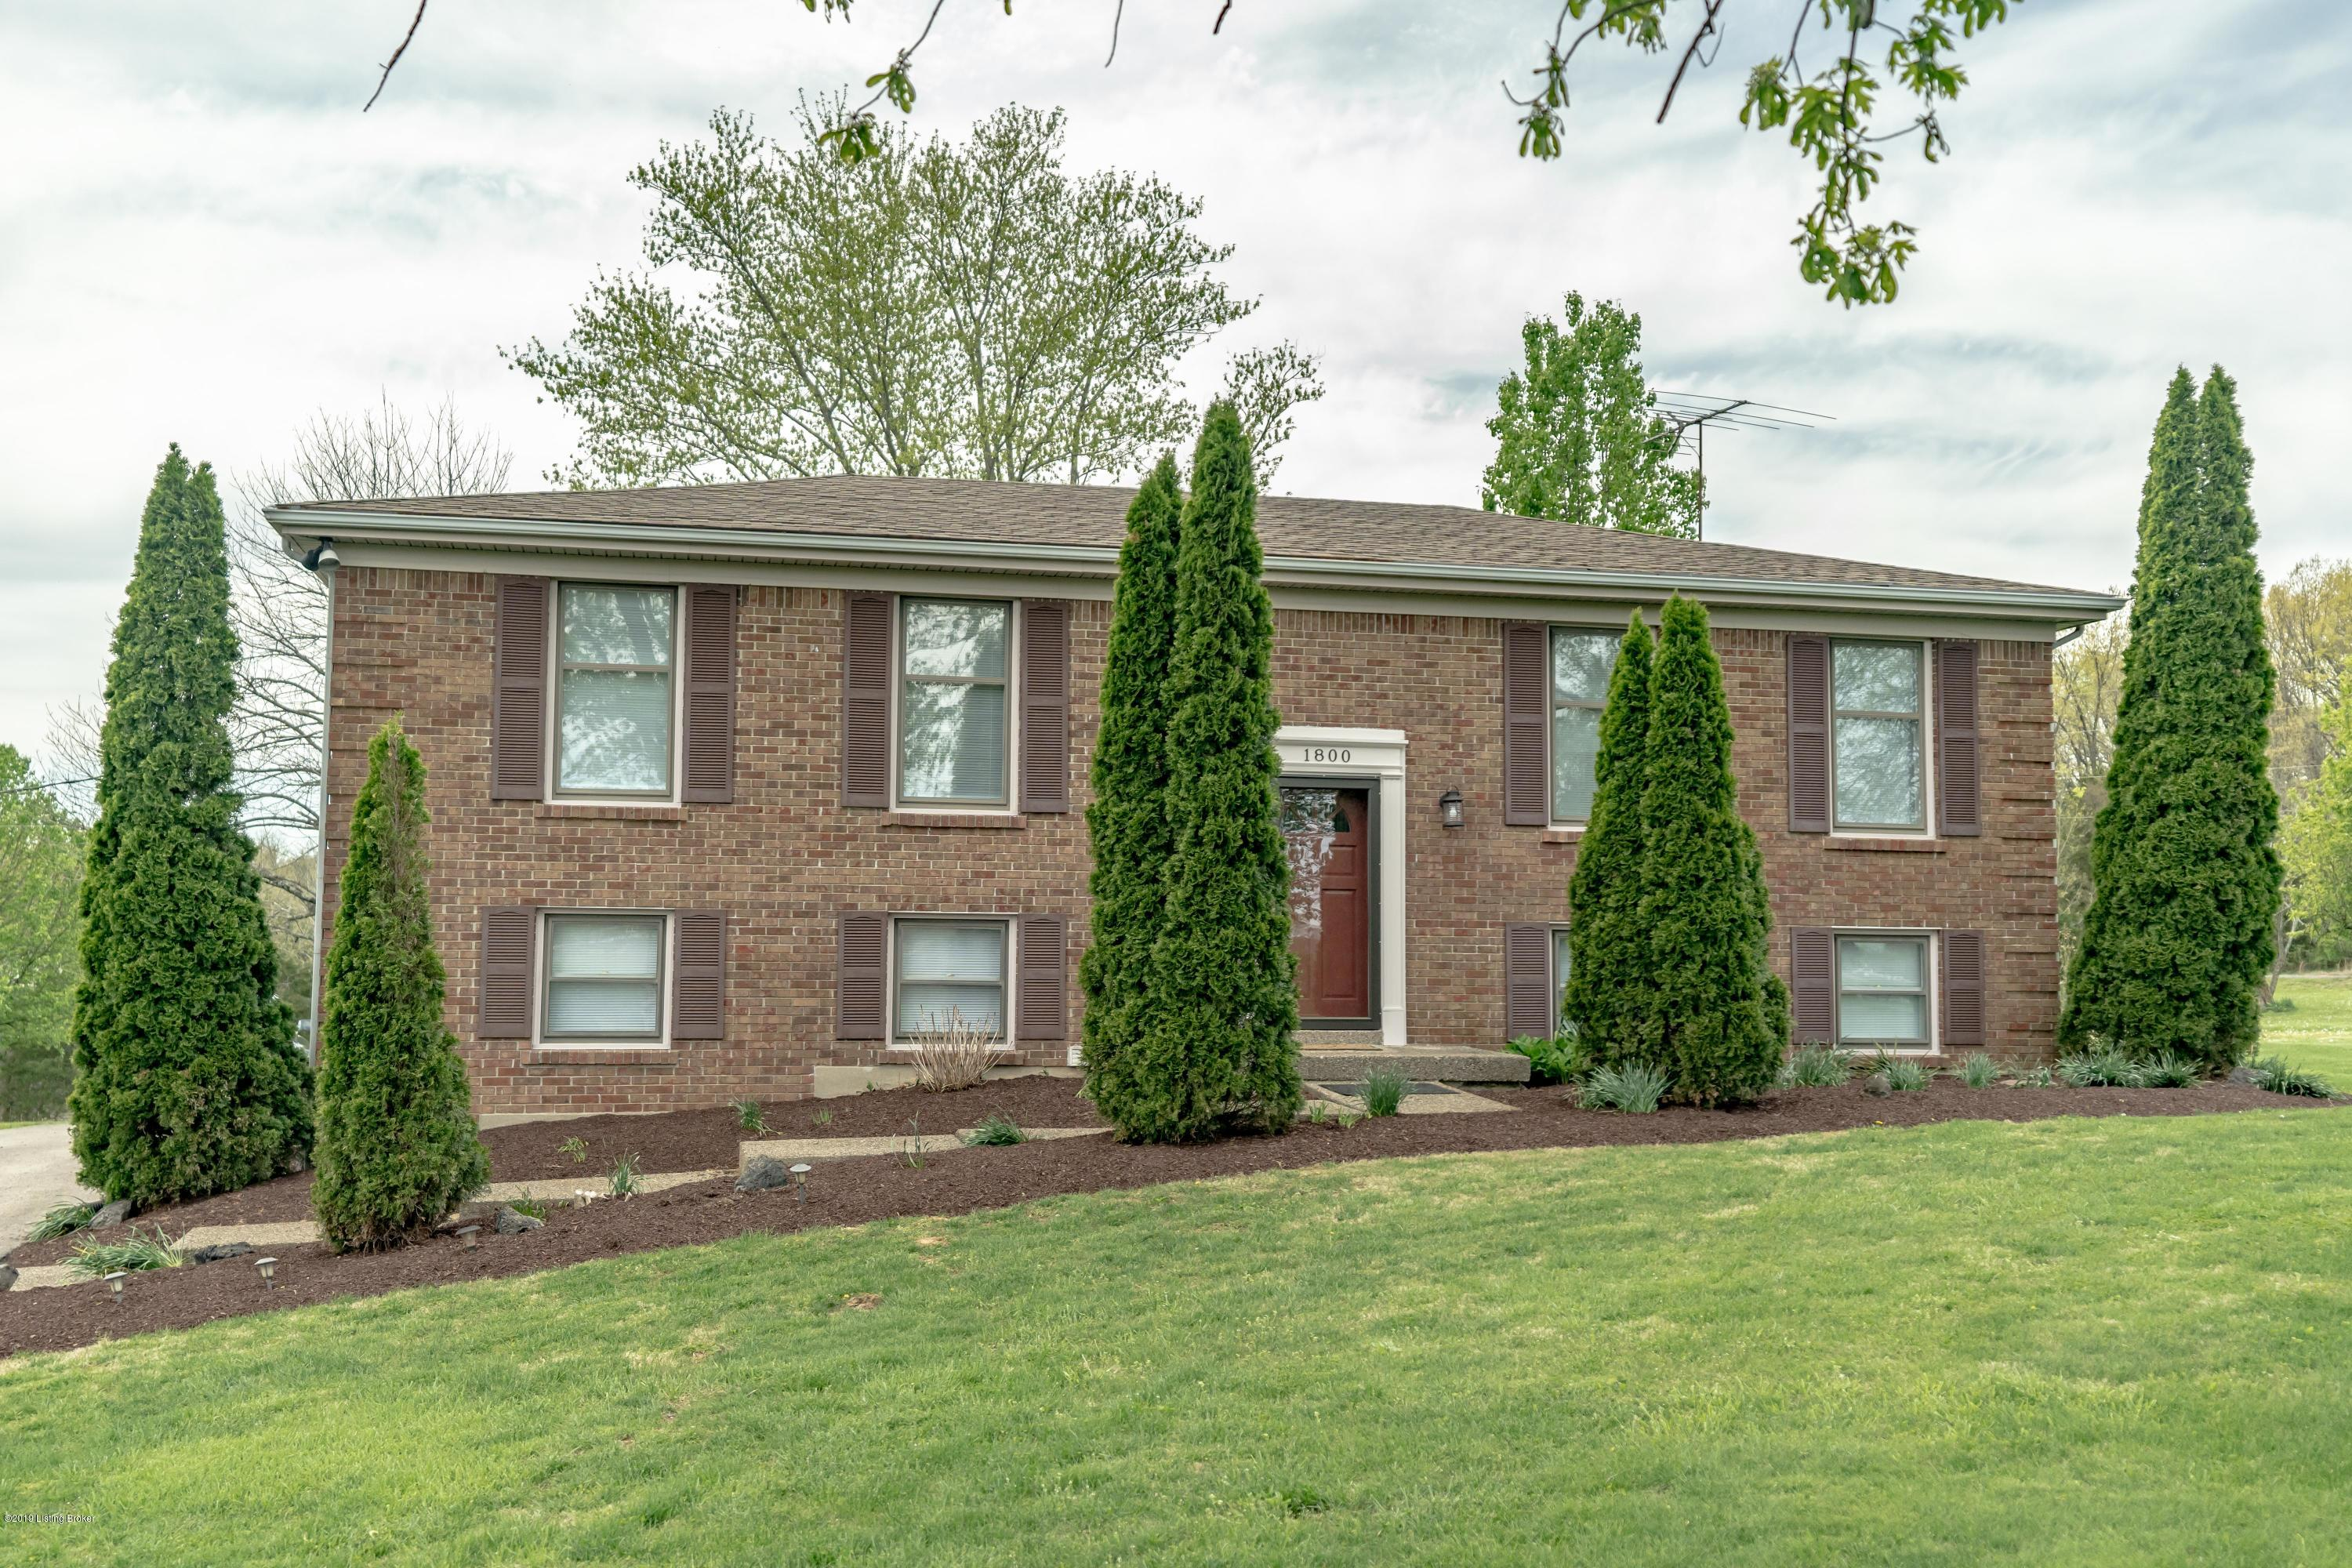 1800 Circleview Dr, La Grange, Kentucky 40031, 4 Bedrooms Bedrooms, 8 Rooms Rooms,2 BathroomsBathrooms,Residential,For Sale,Circleview,1530062